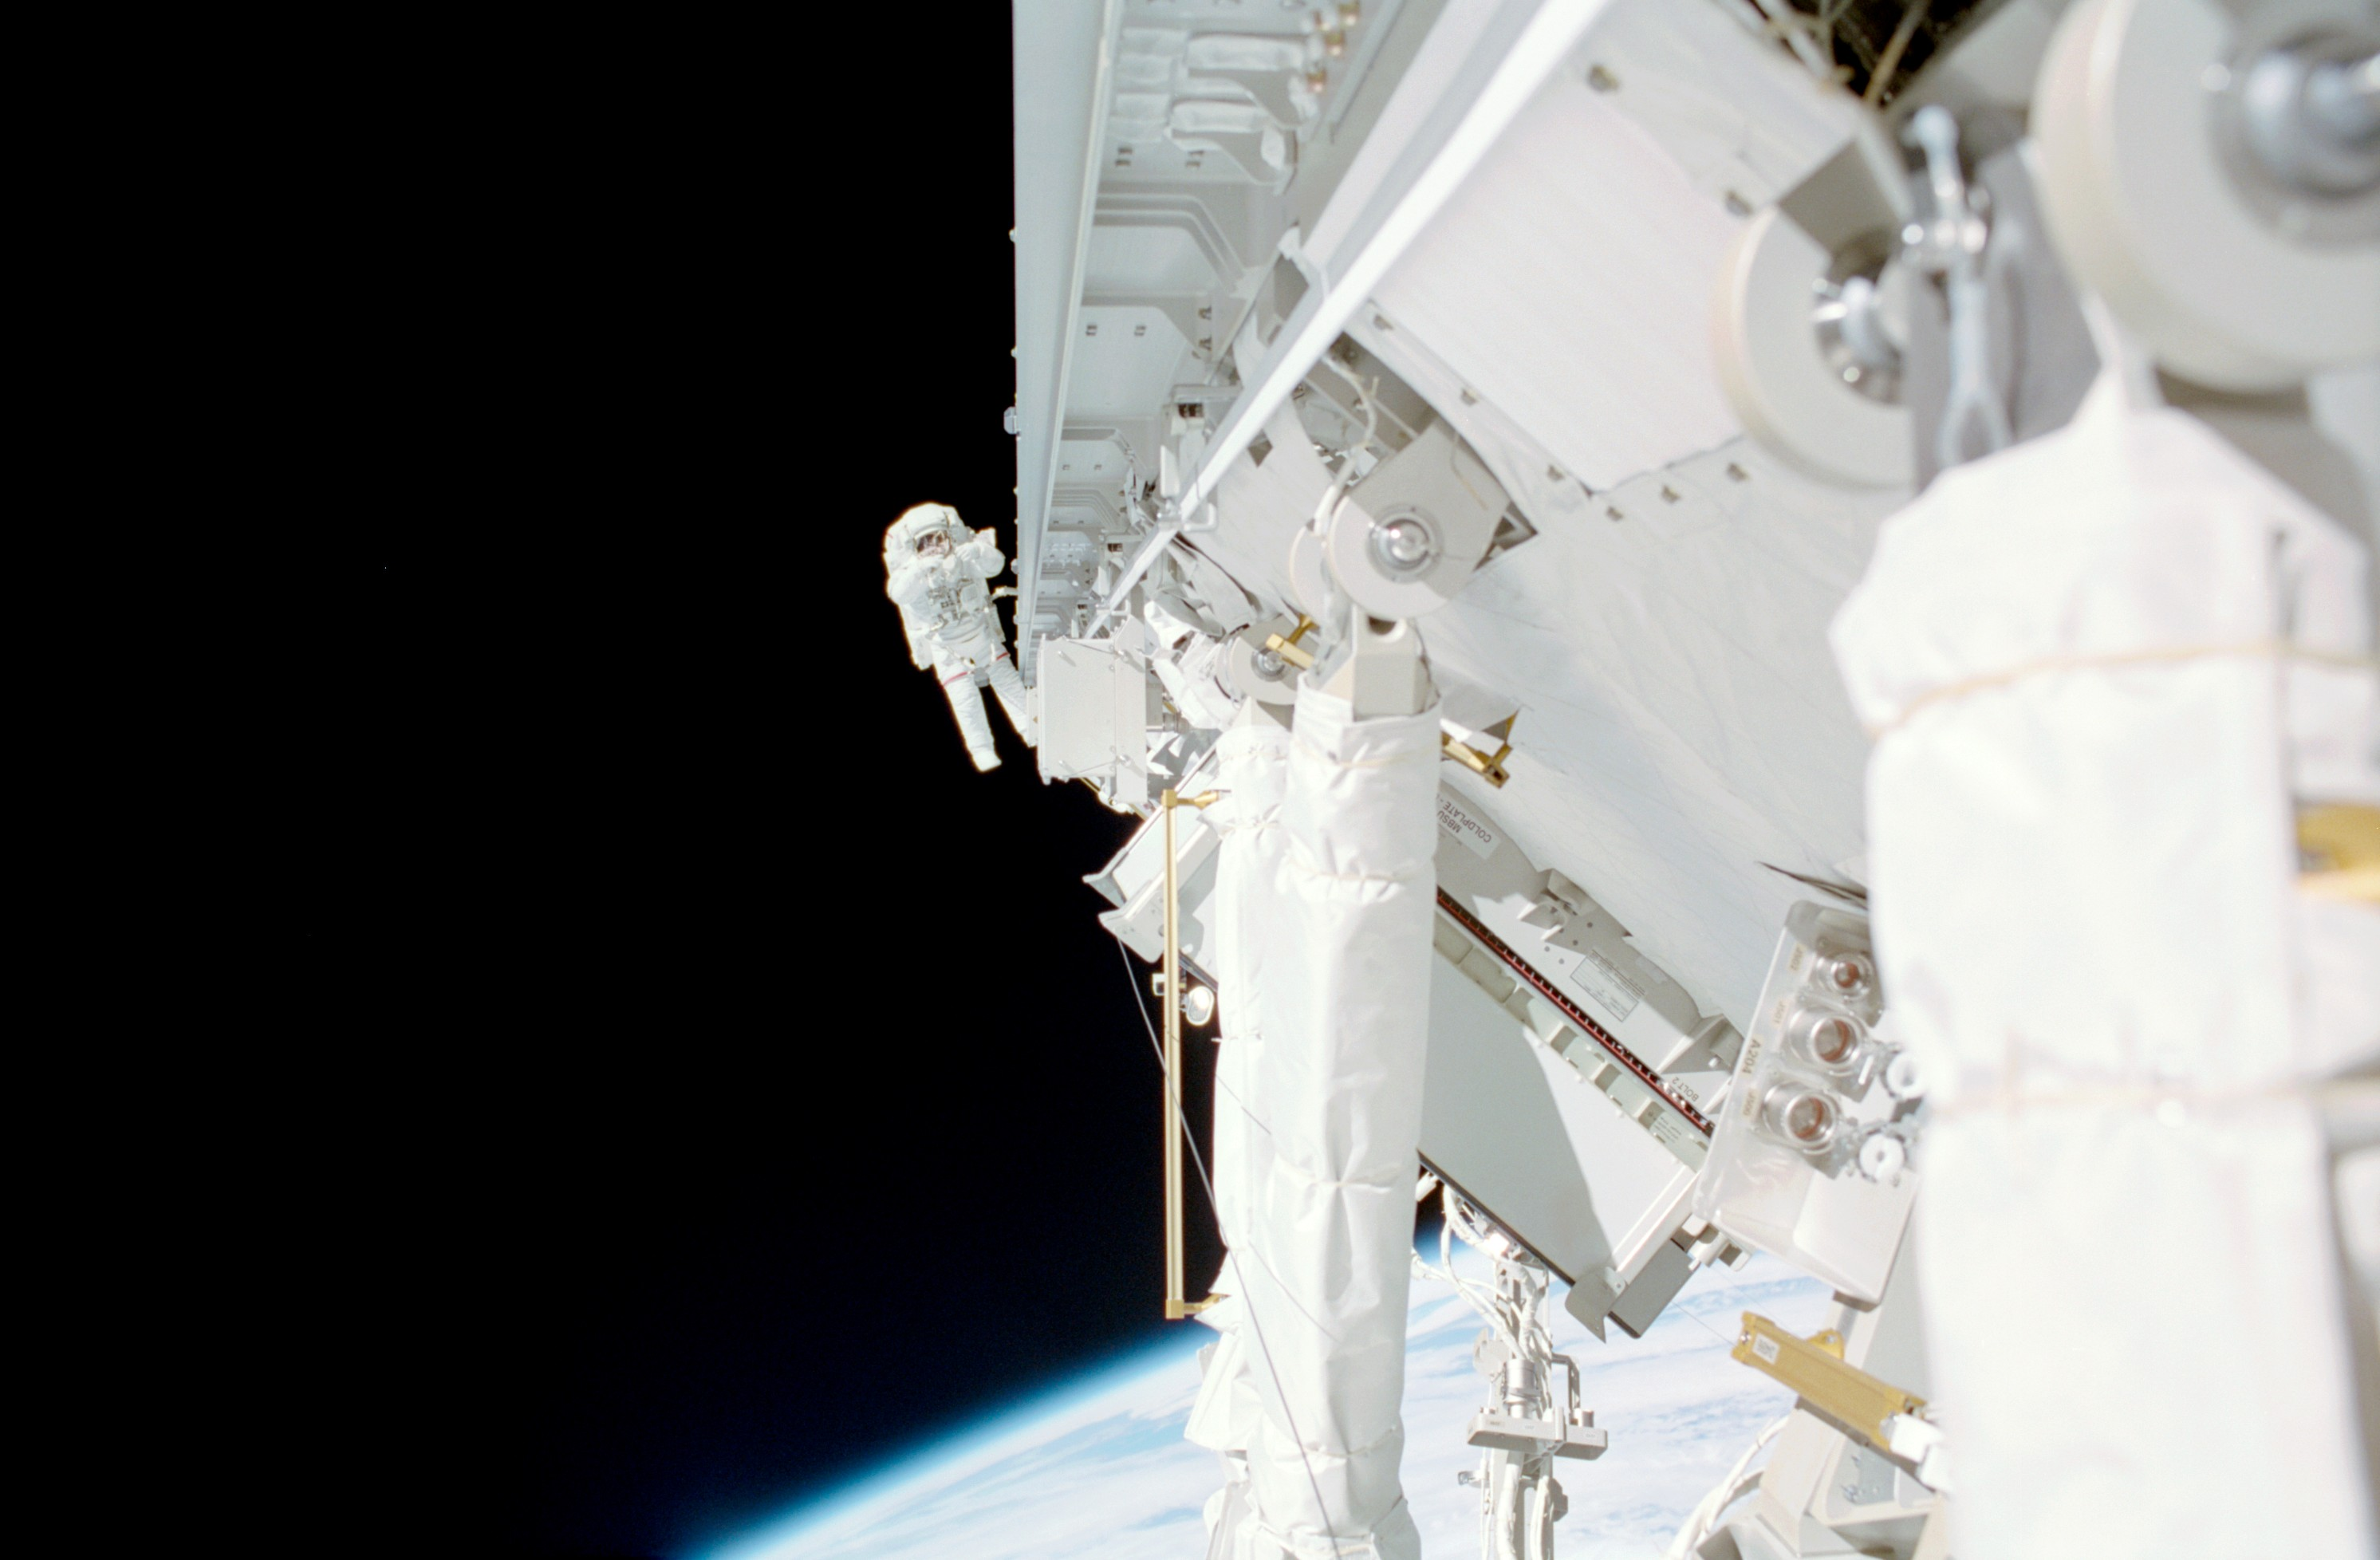 Lopez-Alegria during STS-113 E...